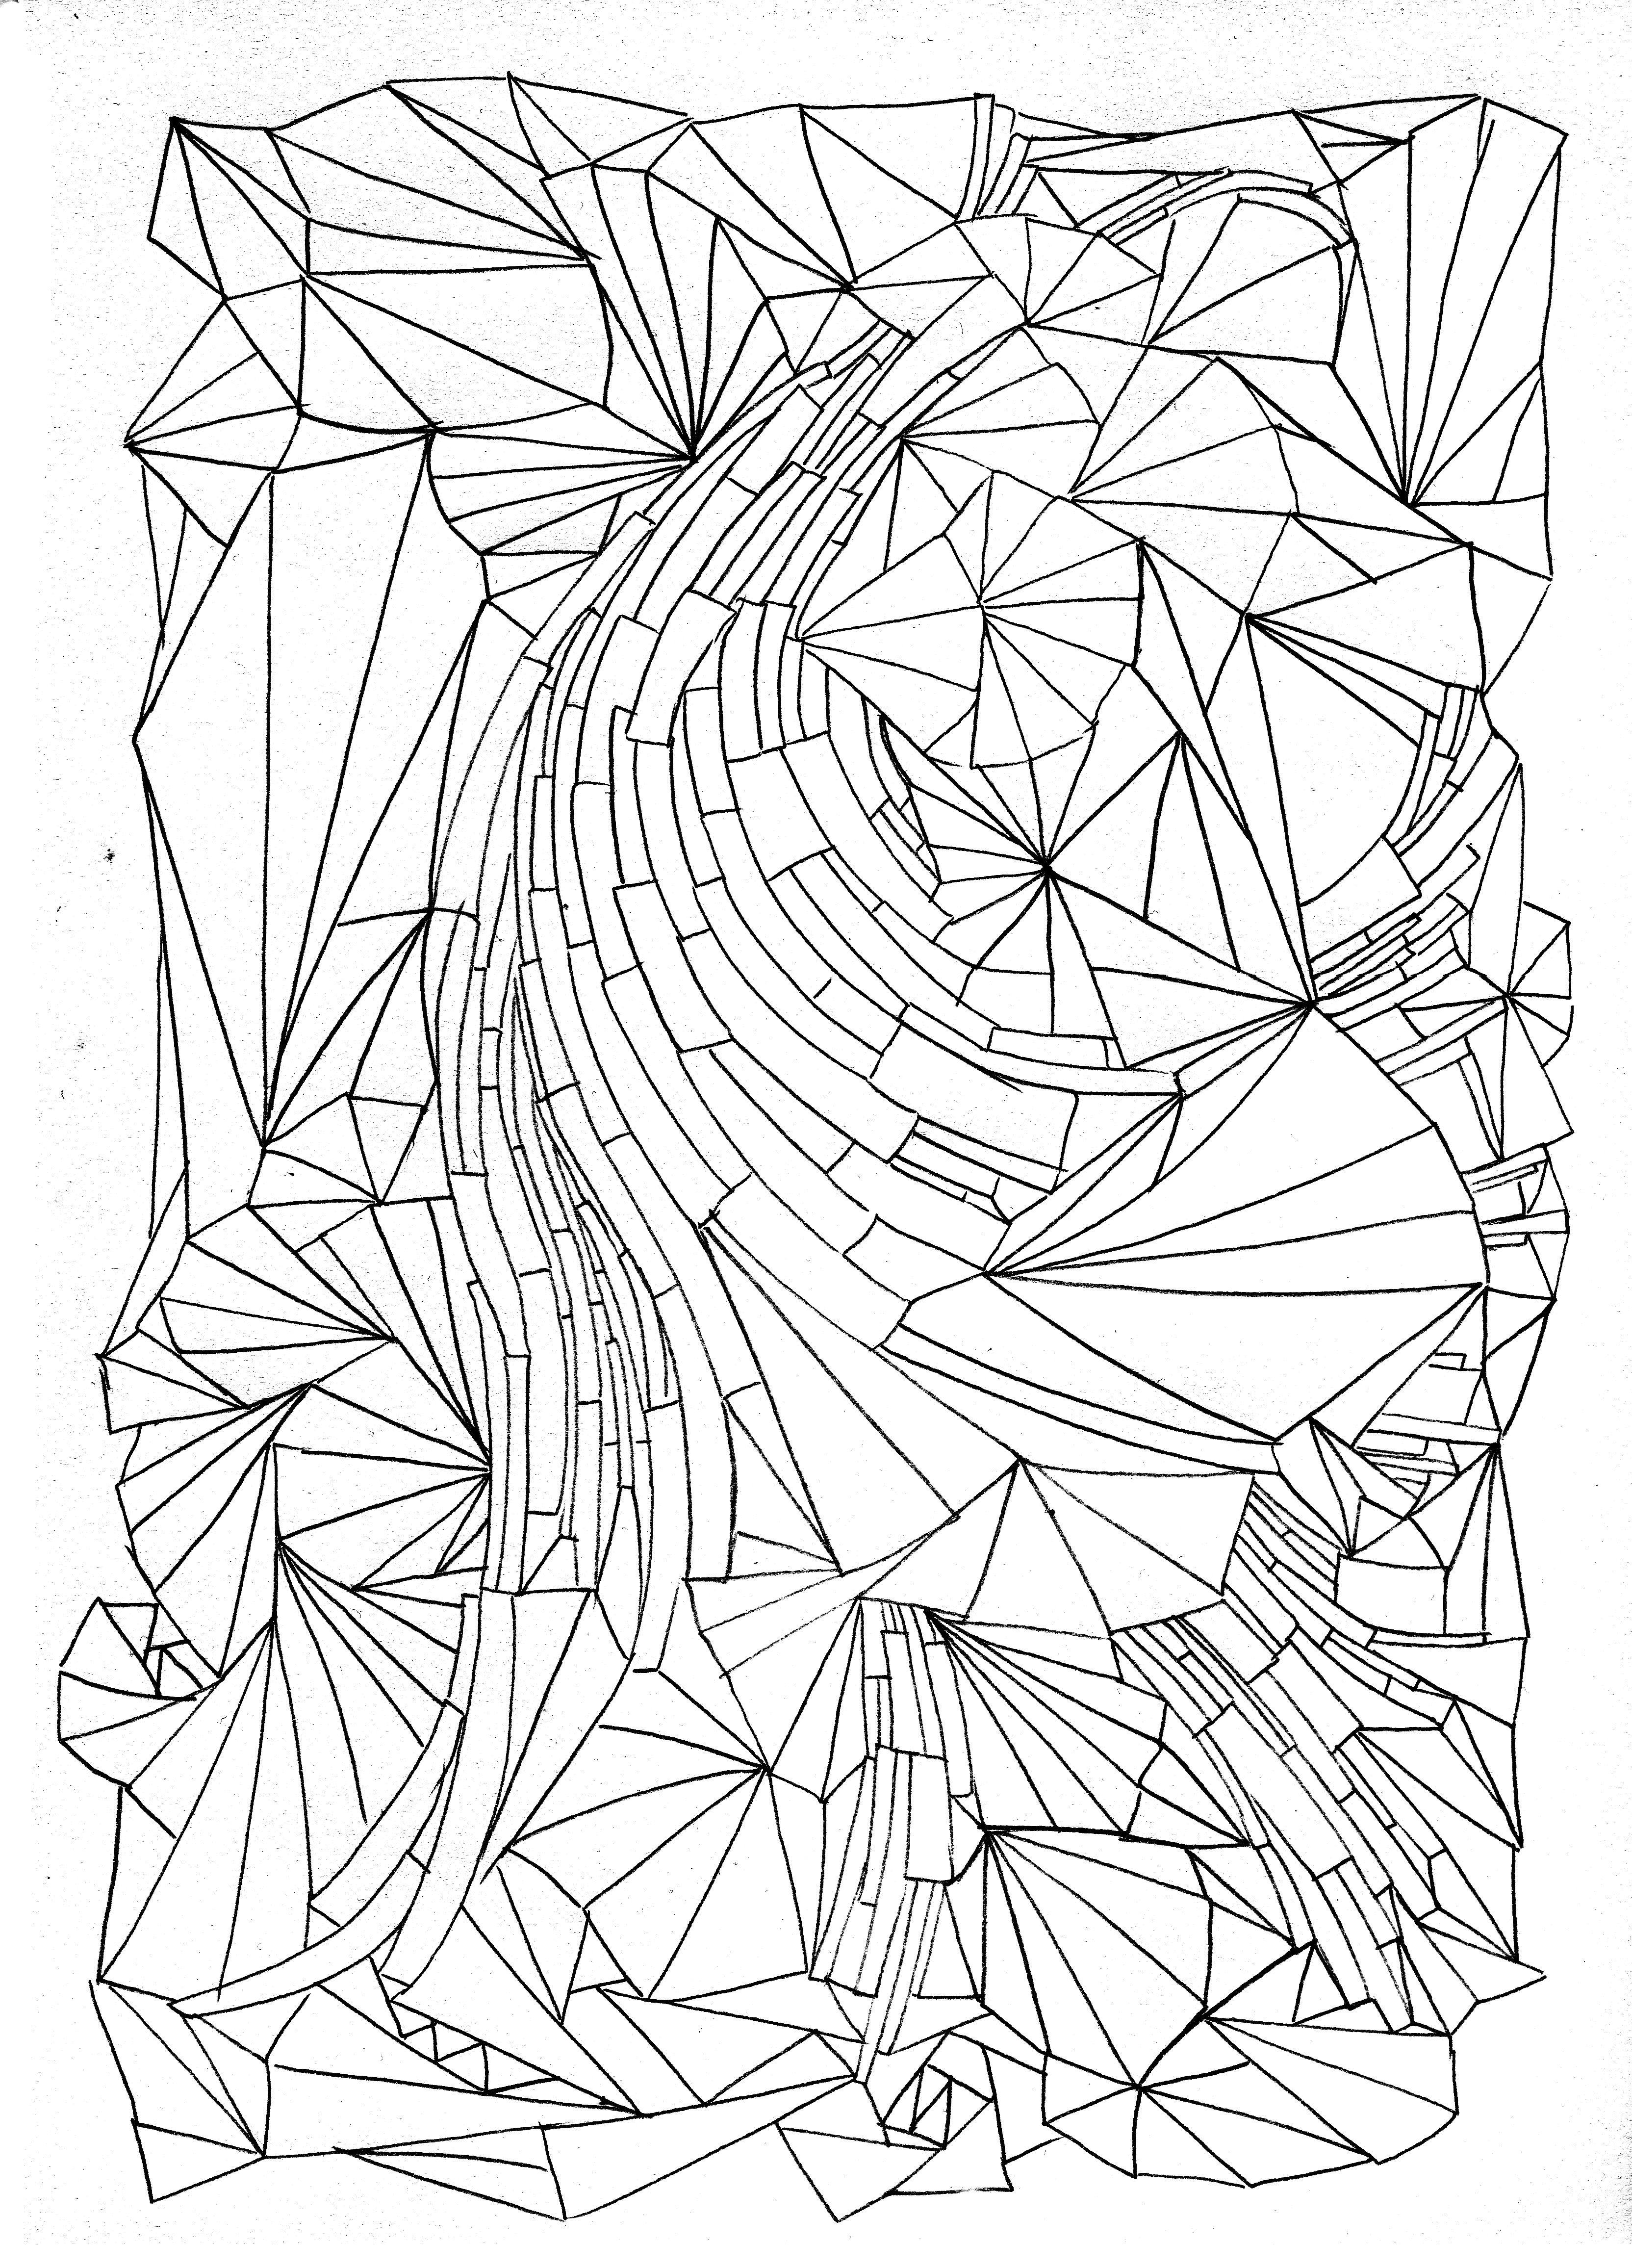 colouring patterns colouring designs thelinoprinter patterns colouring